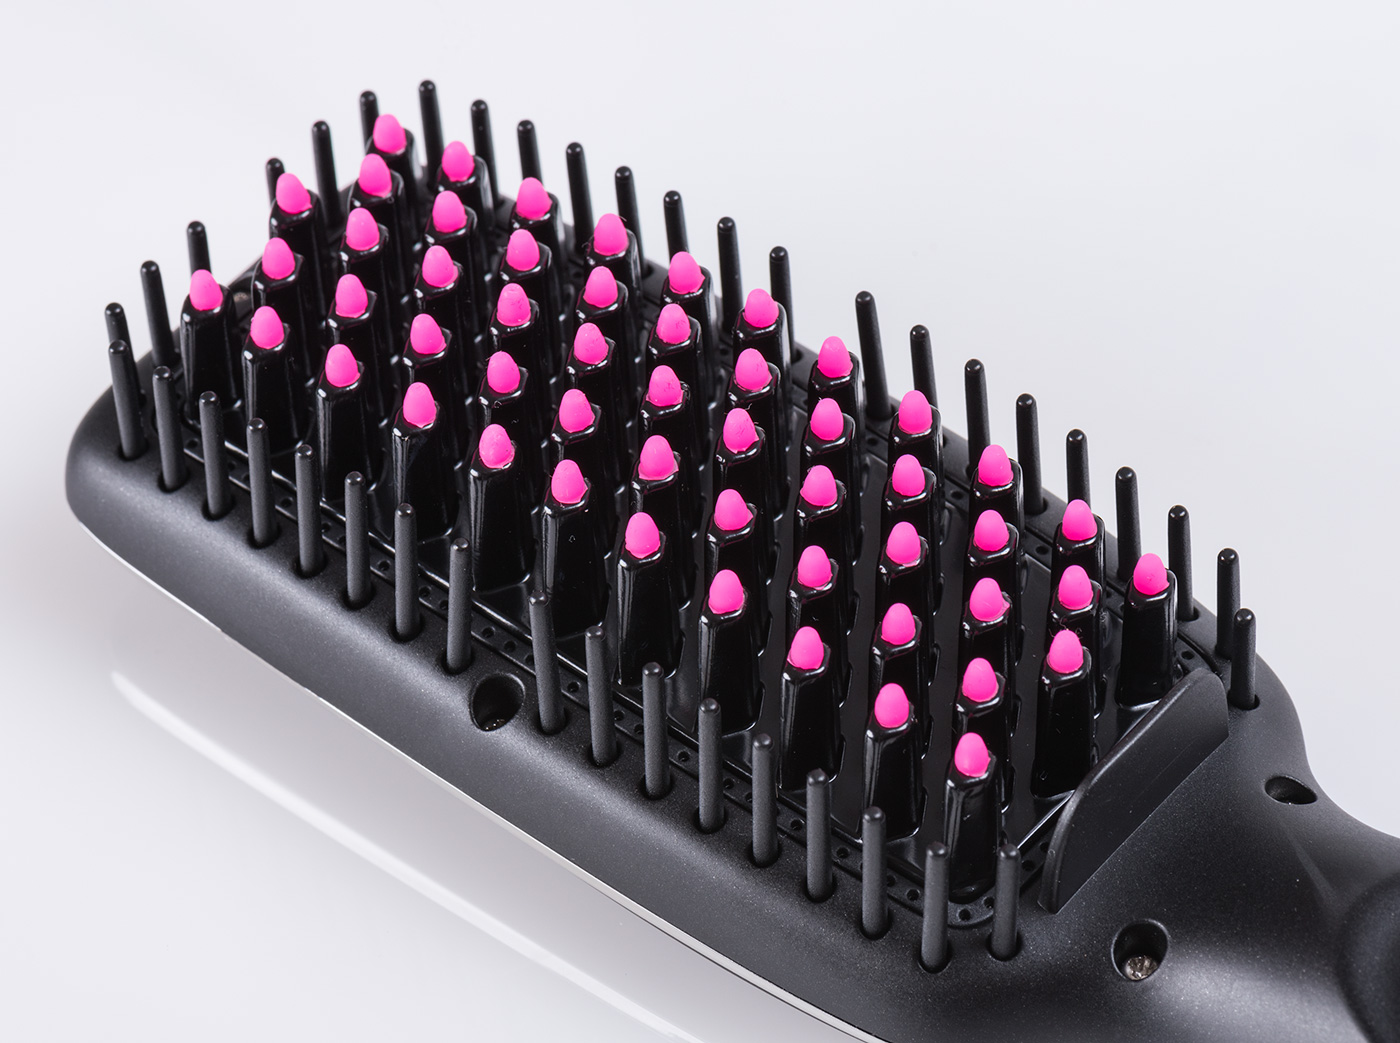 TF_Beauty_Pinkbrush_02.jpg